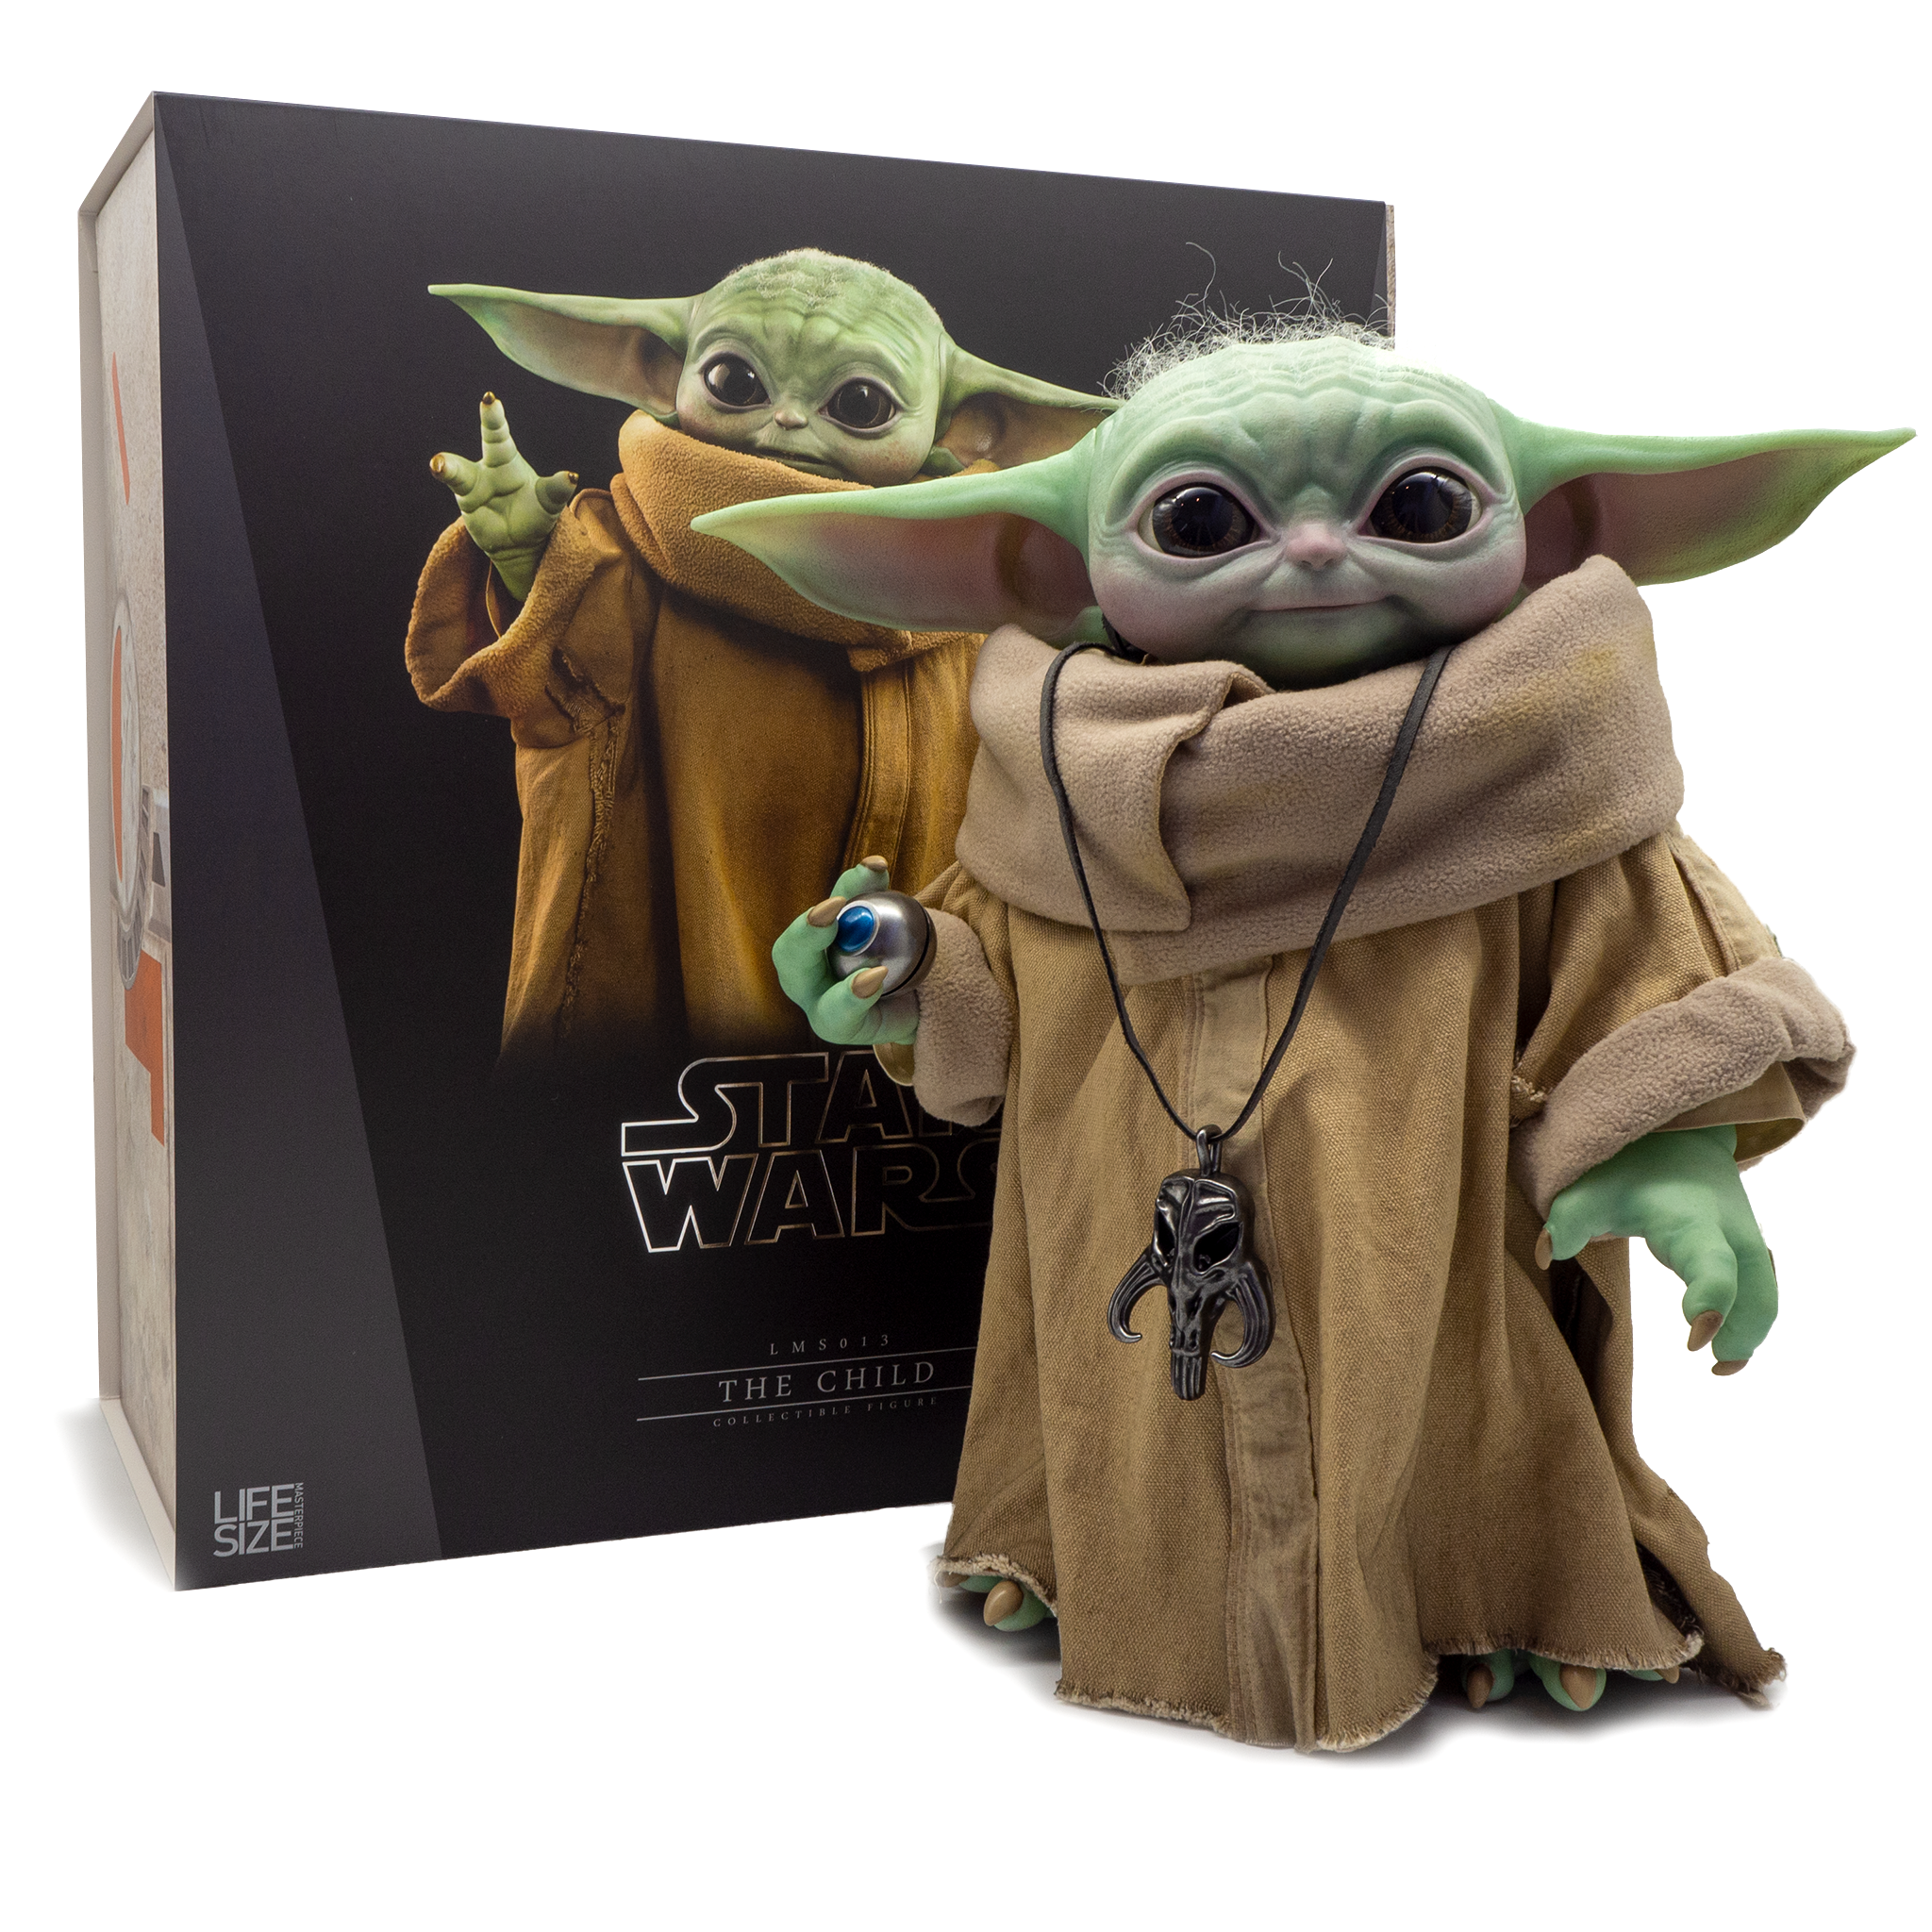 Star Wars The Child Life-size Collectible Figure by Hot Toys